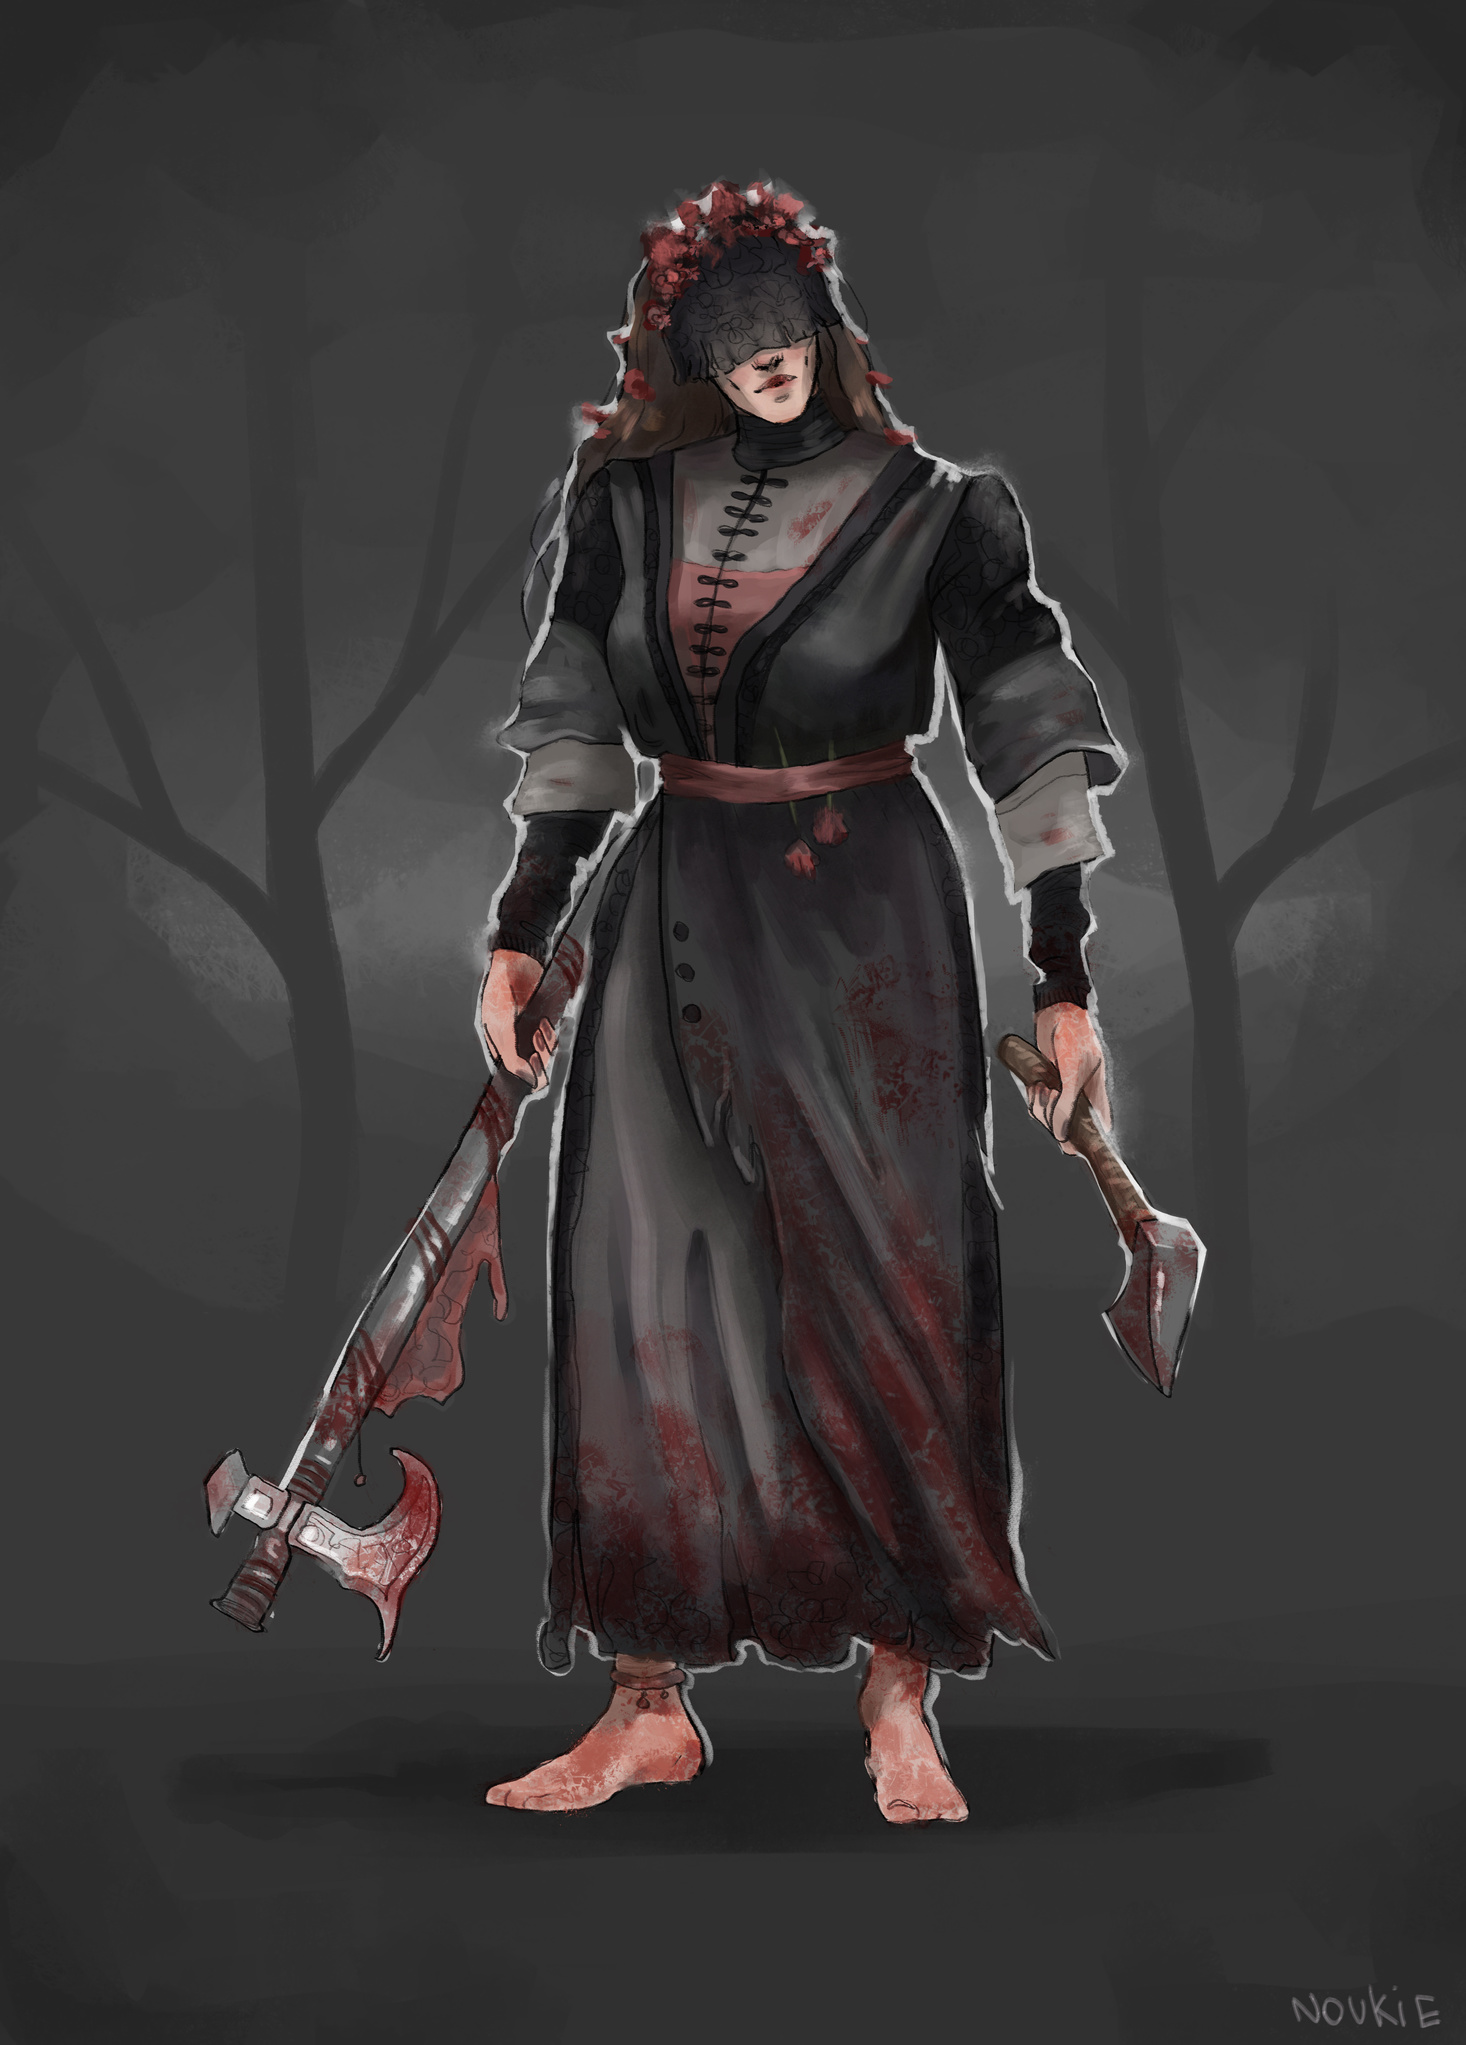 Huntress Skin Dead By Daylight Halloween 2020 THE HUNTRESS   Mother's Mourning | Skin Concept — Dead By Daylight